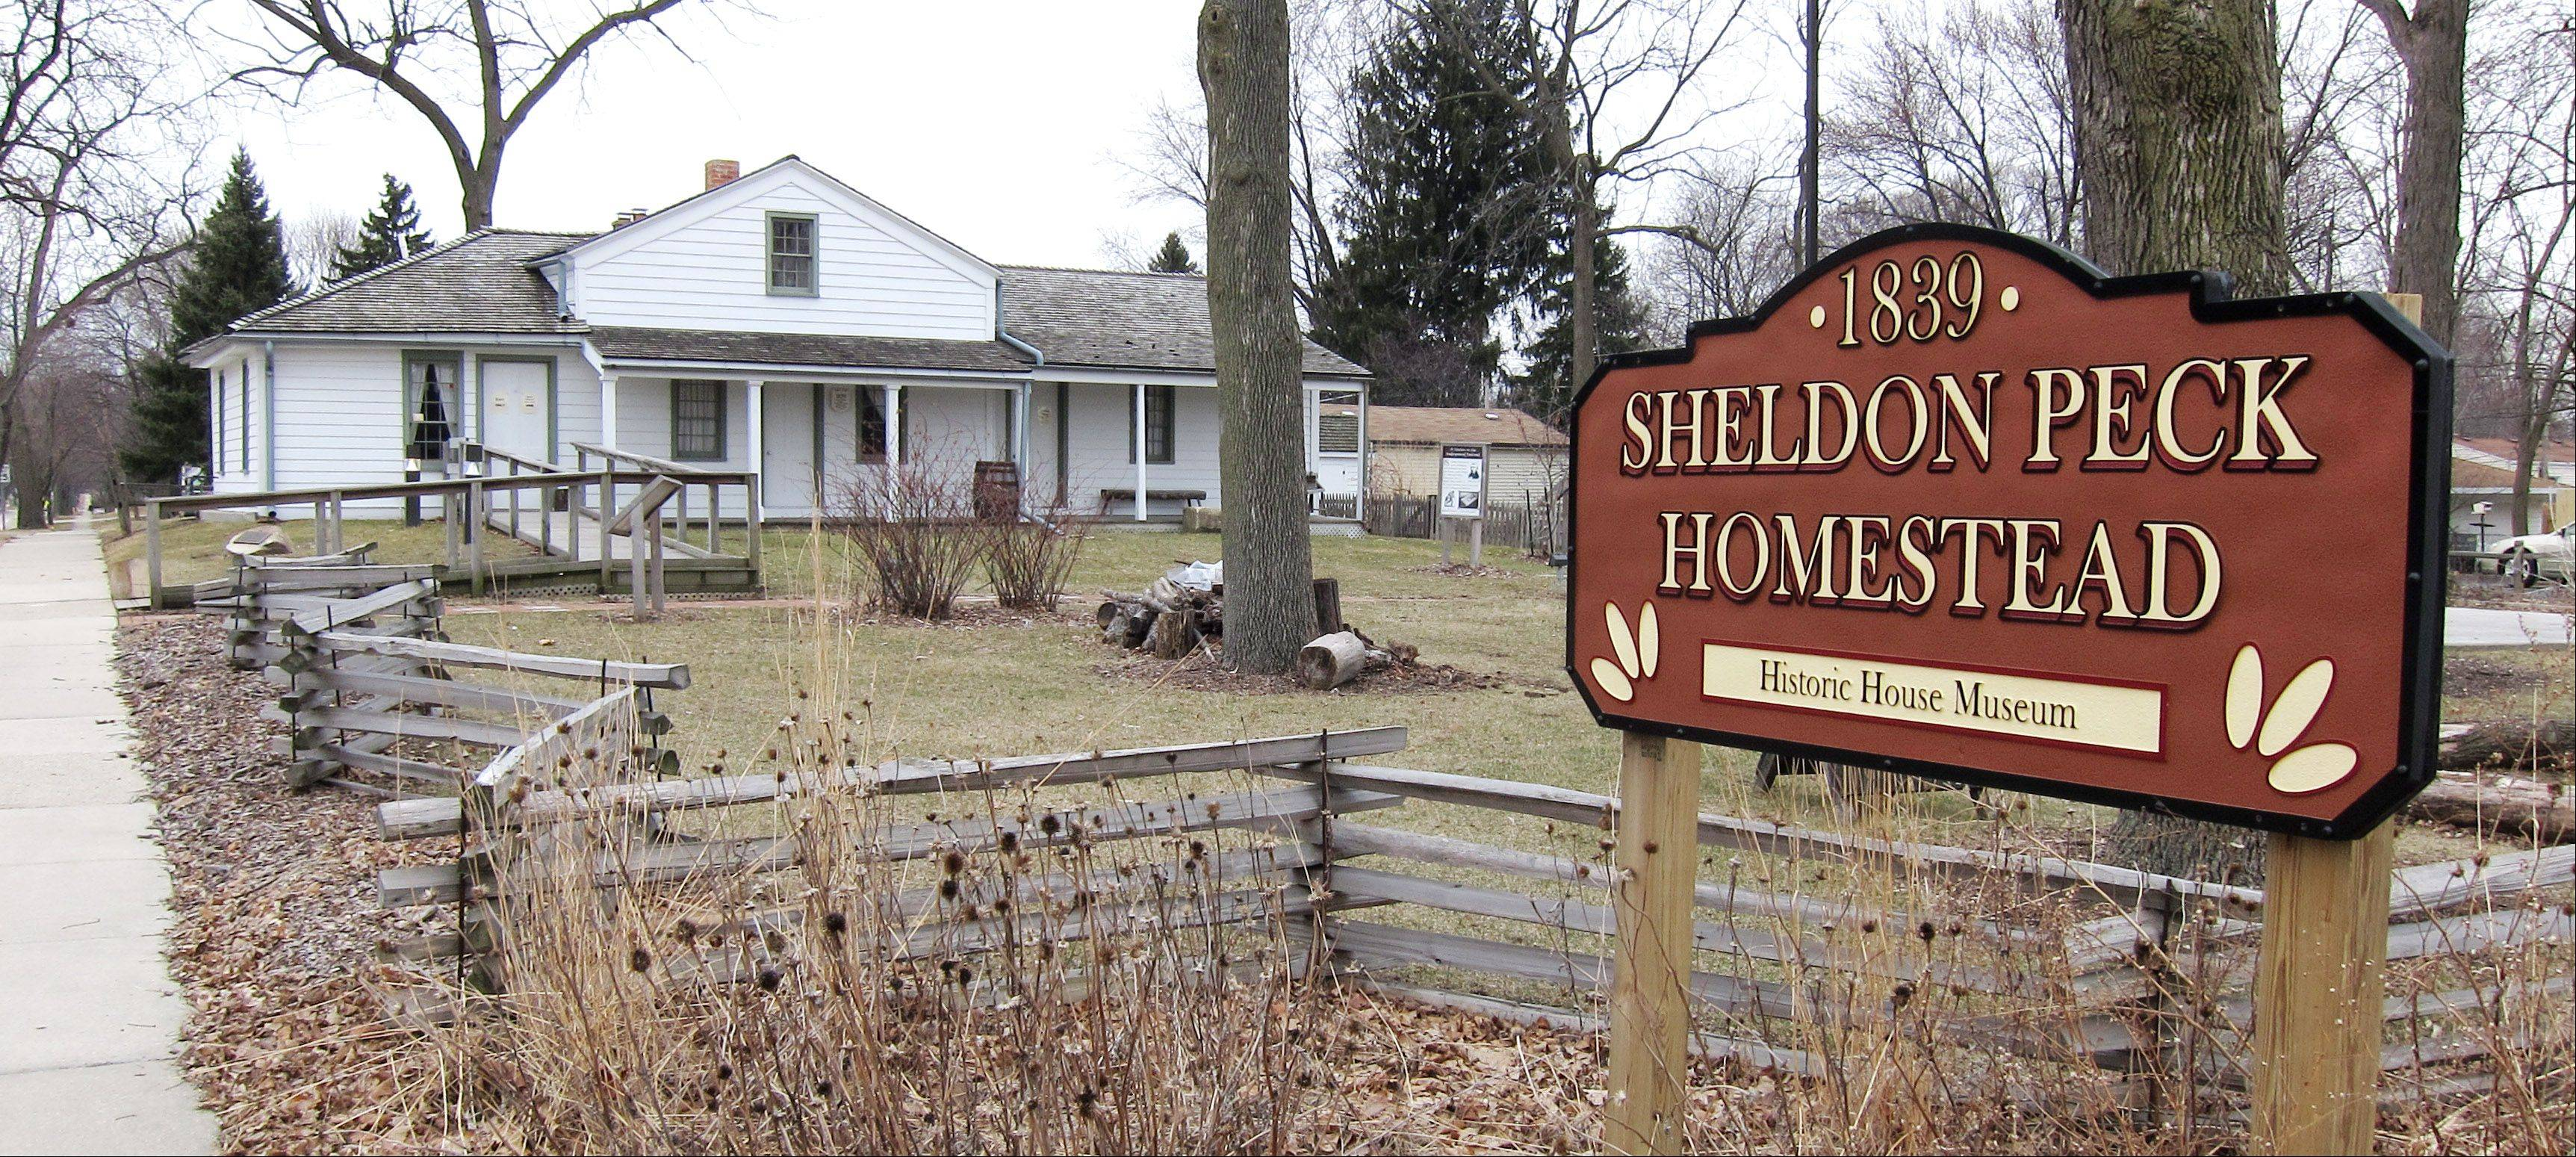 The Sheldon Peck Homestead at 355 E. Parkside Ave. in Lombard is listed on the National Park Service's Network to Freedom, a list of verified Underground Railroad sites. The Lombard Historical Society will mark the 150th anniversary of the Emancipation Proclamation at the homestead from 1 to 3 p.m. Tuesday, Jan. 1.